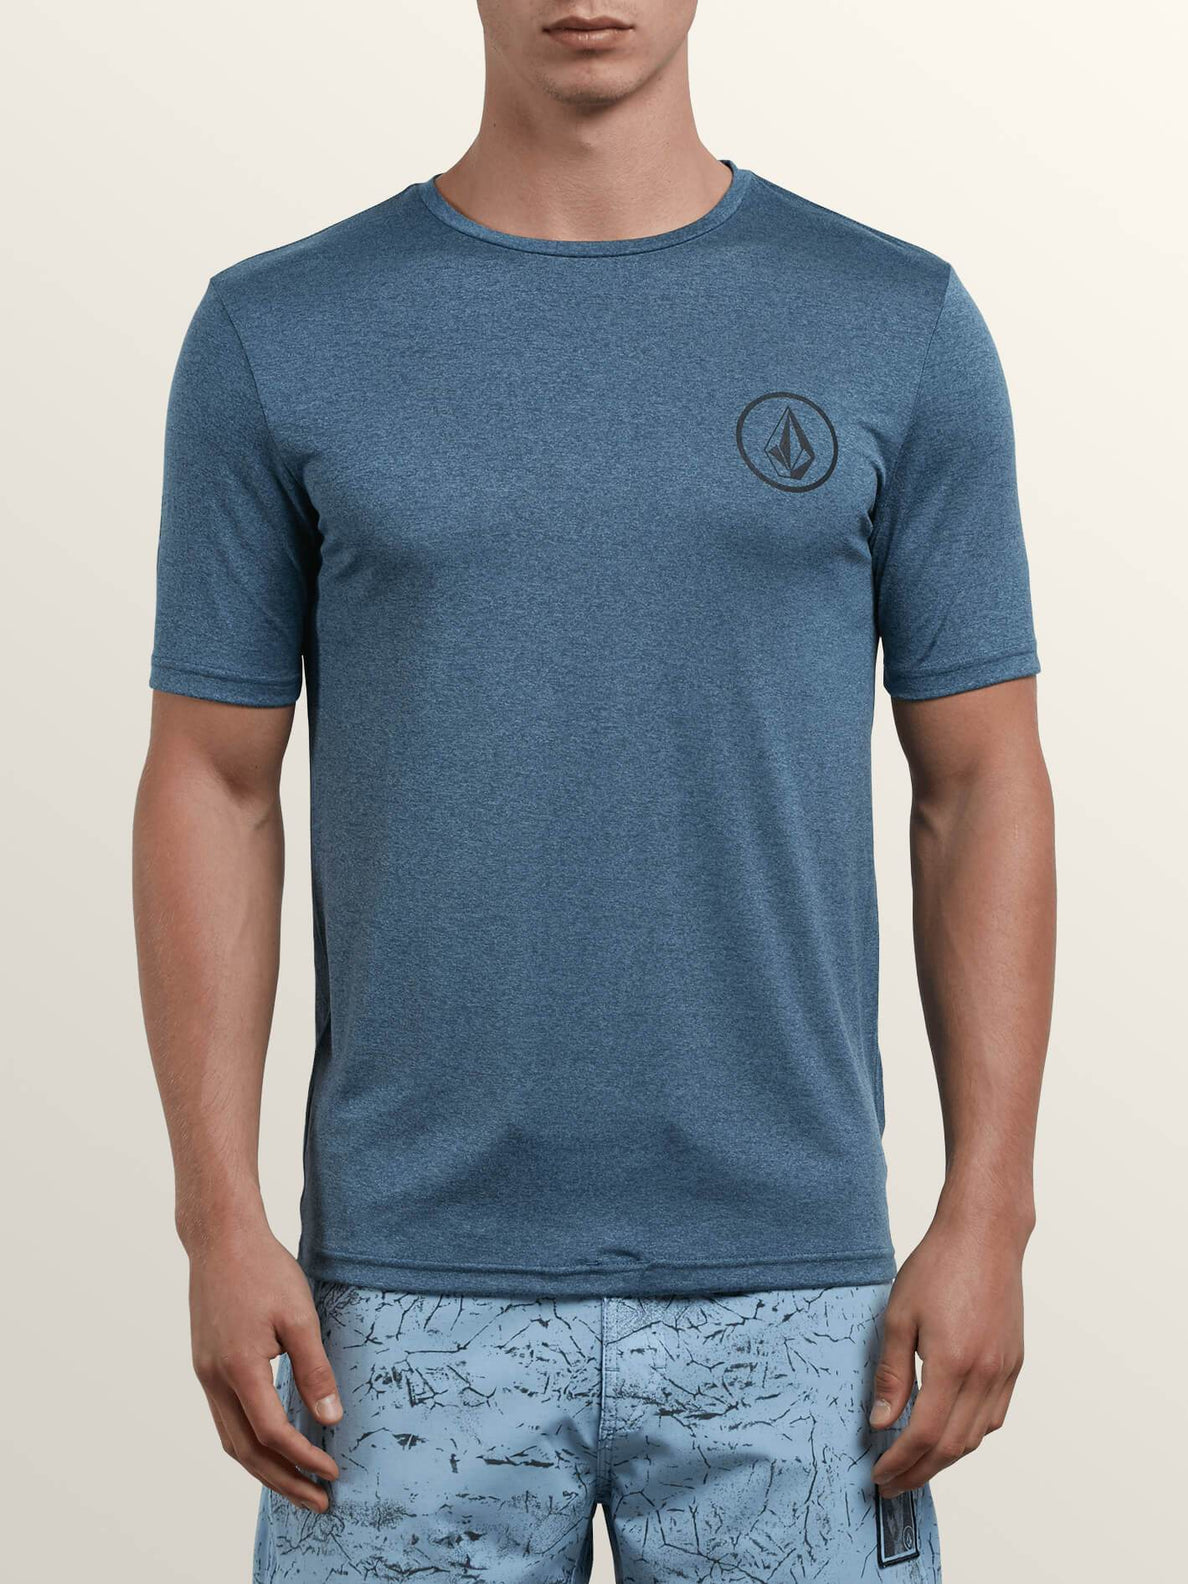 Lido Heather Short Sleeve Rashguard In Deep Blue, Front View